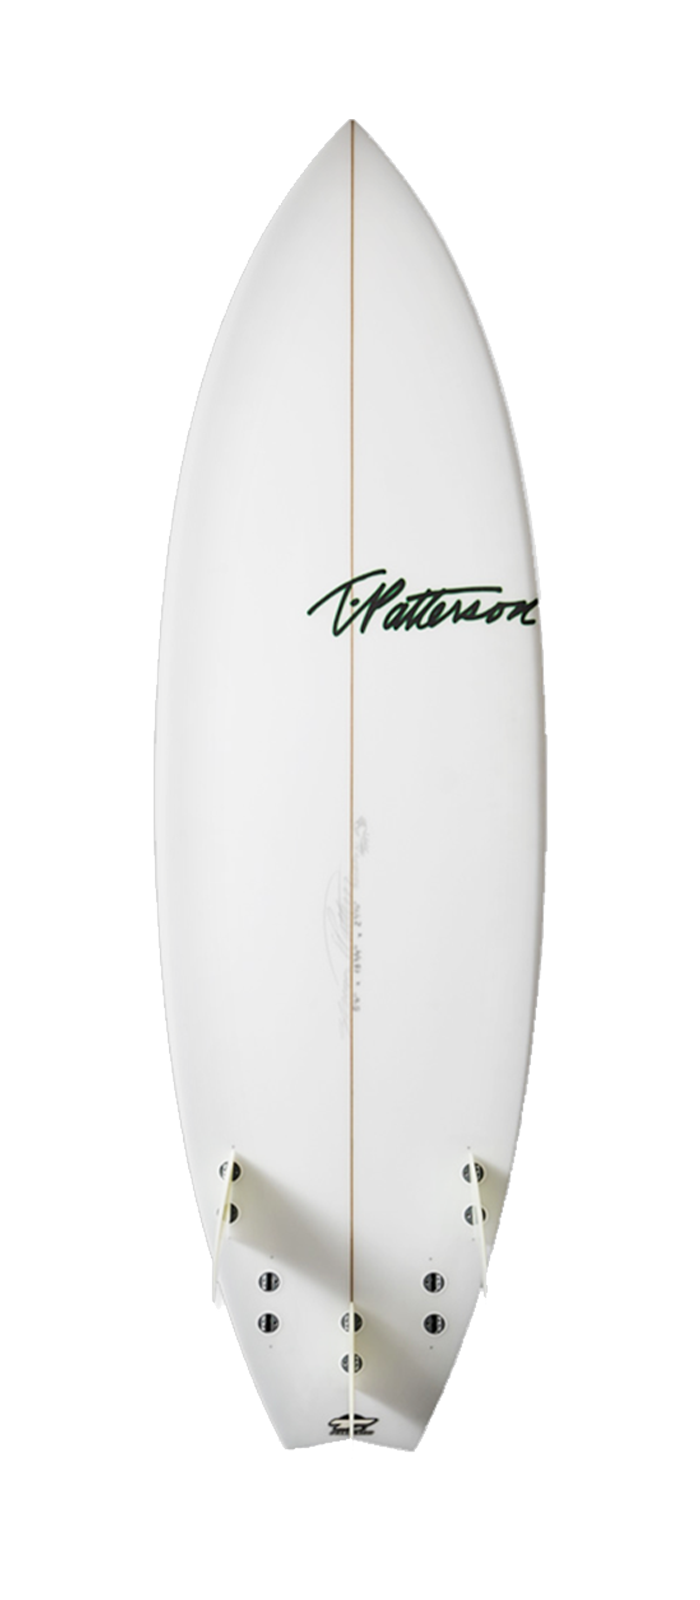 Scorpion surfboard model bottom